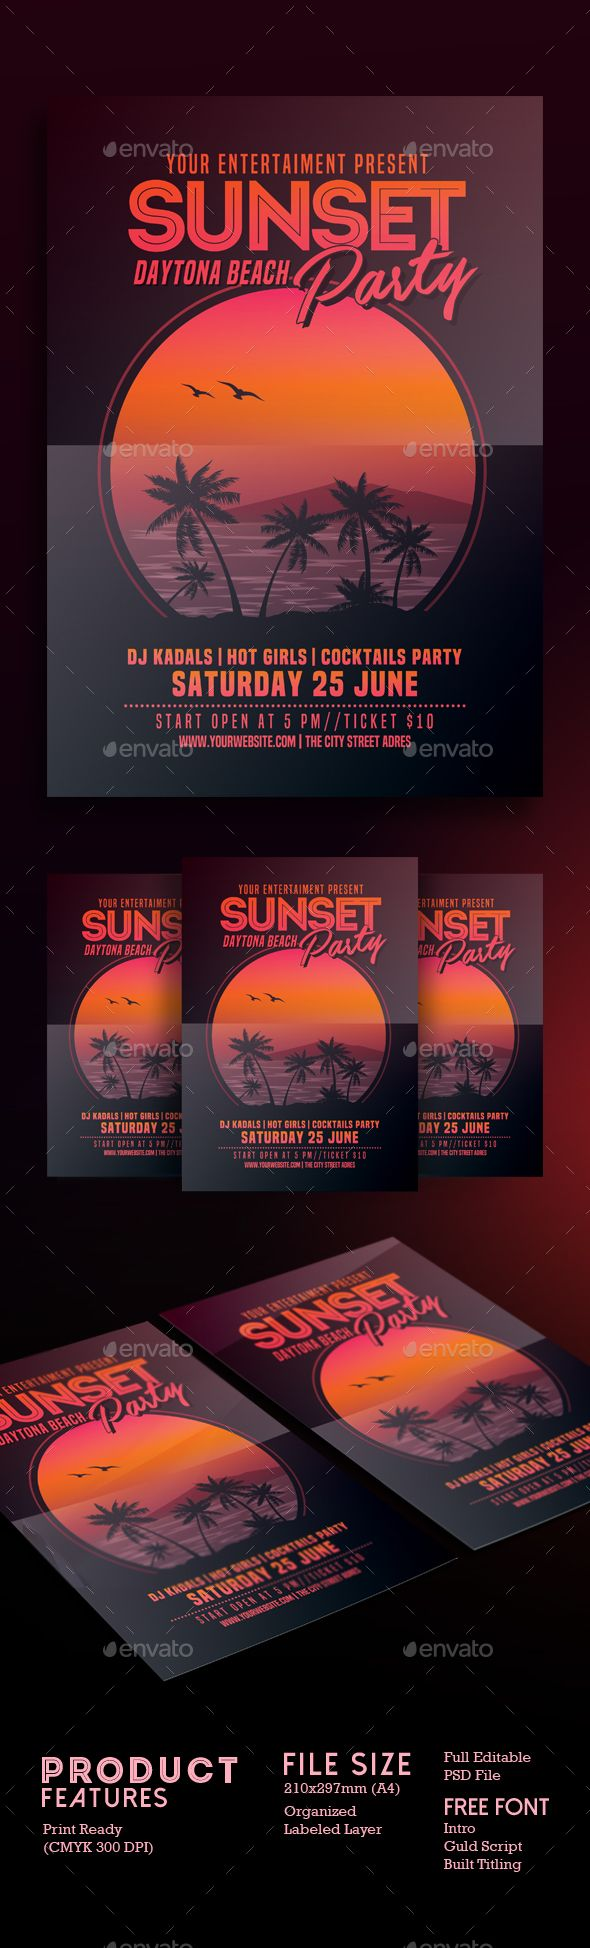 Sunset Beach Party Flyer Template PSD. Download here: http://graphicriver.net/item/sunset-beach-party-flyer/16644176?ref=ksioks